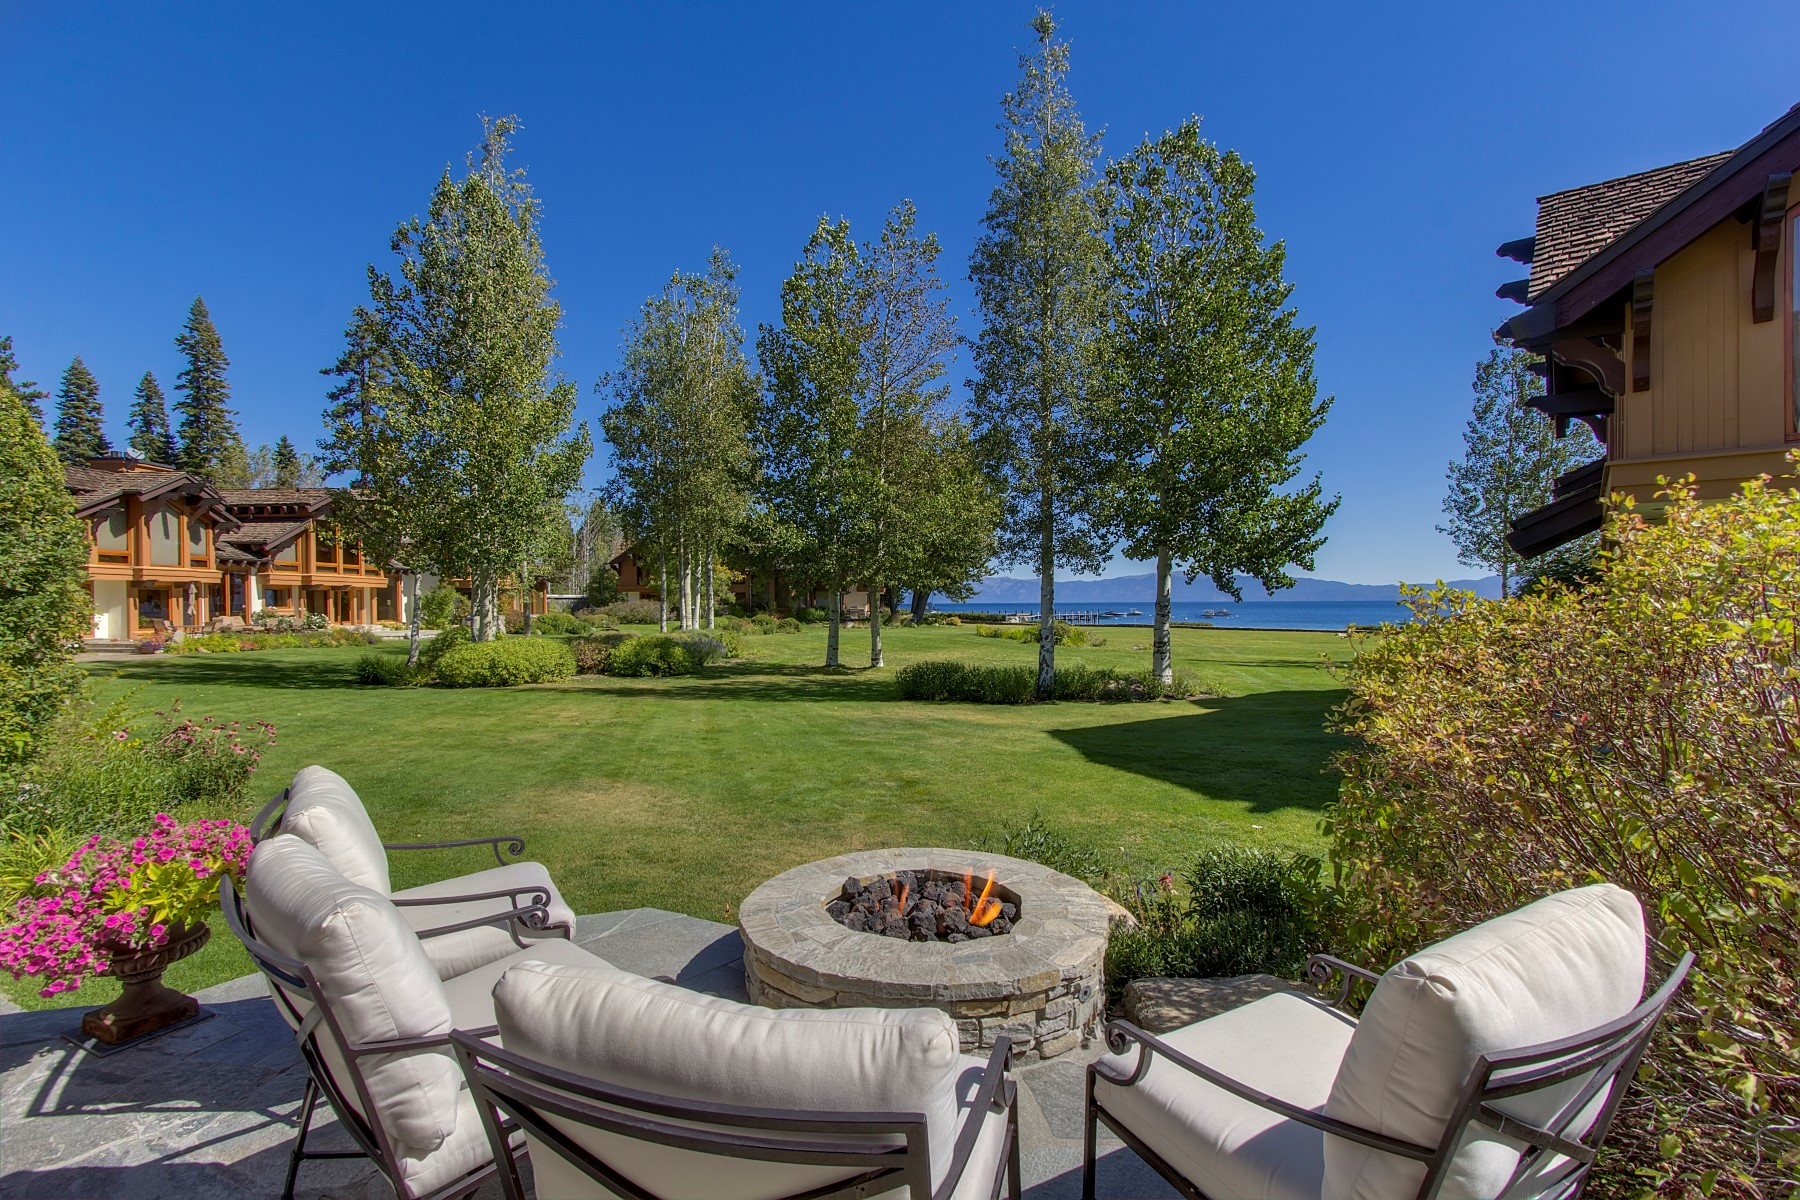 Кондоминиум для того Продажа на 4000 West Lake Boulevard #13 Fleur Du Lac Estates Homewood, Калифорния, 96141 Lake Tahoe, Соединенные Штаты